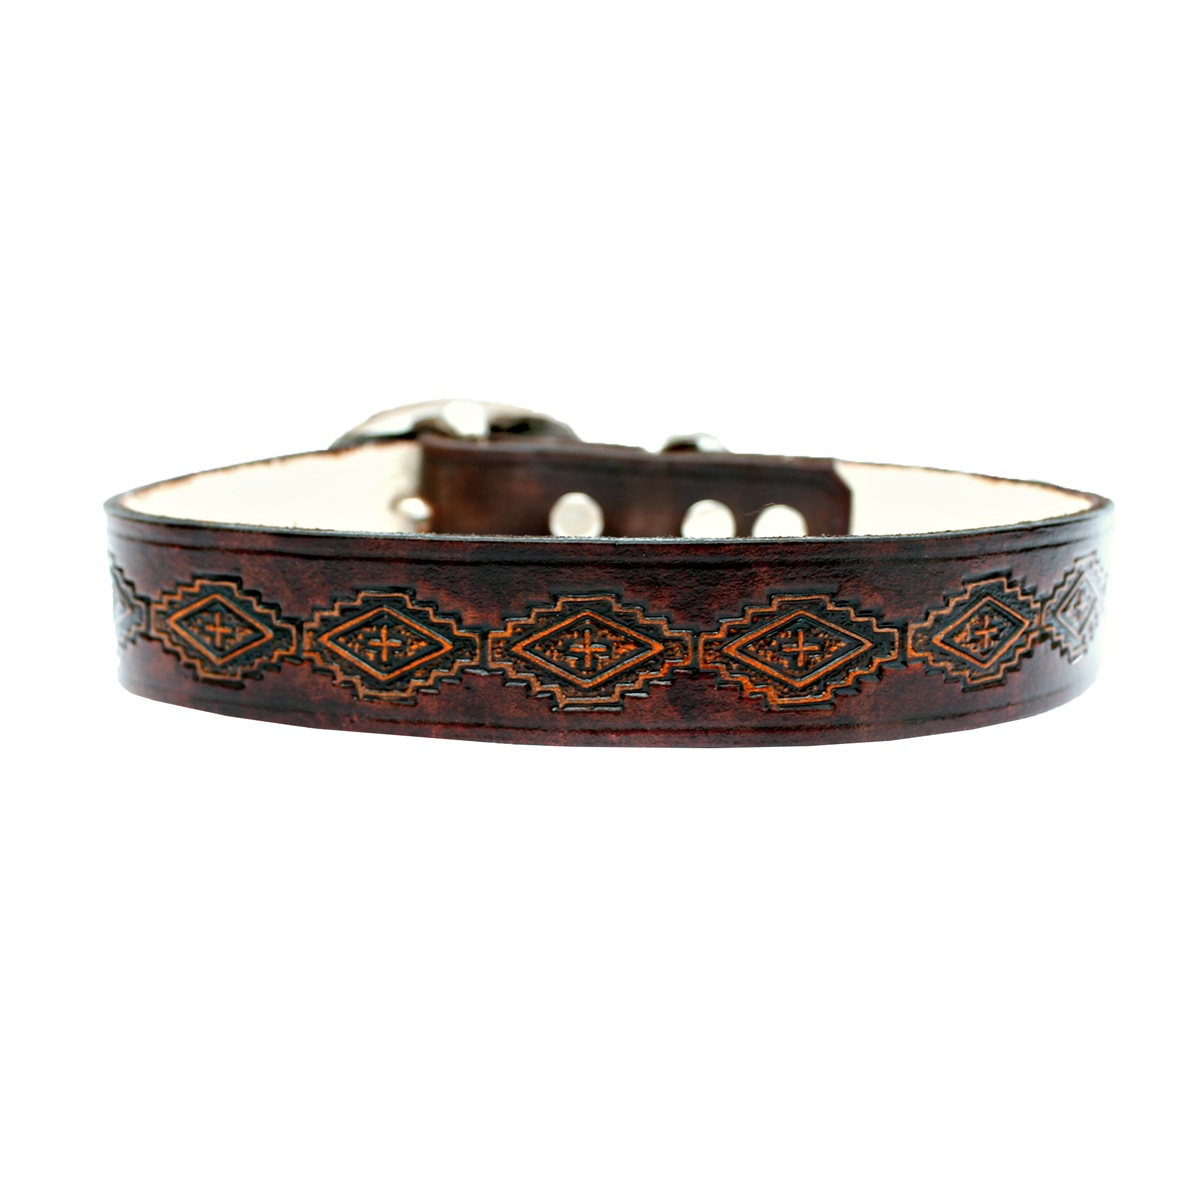 tooled-leather-dog-collar-the-leather-smithy_1WEB